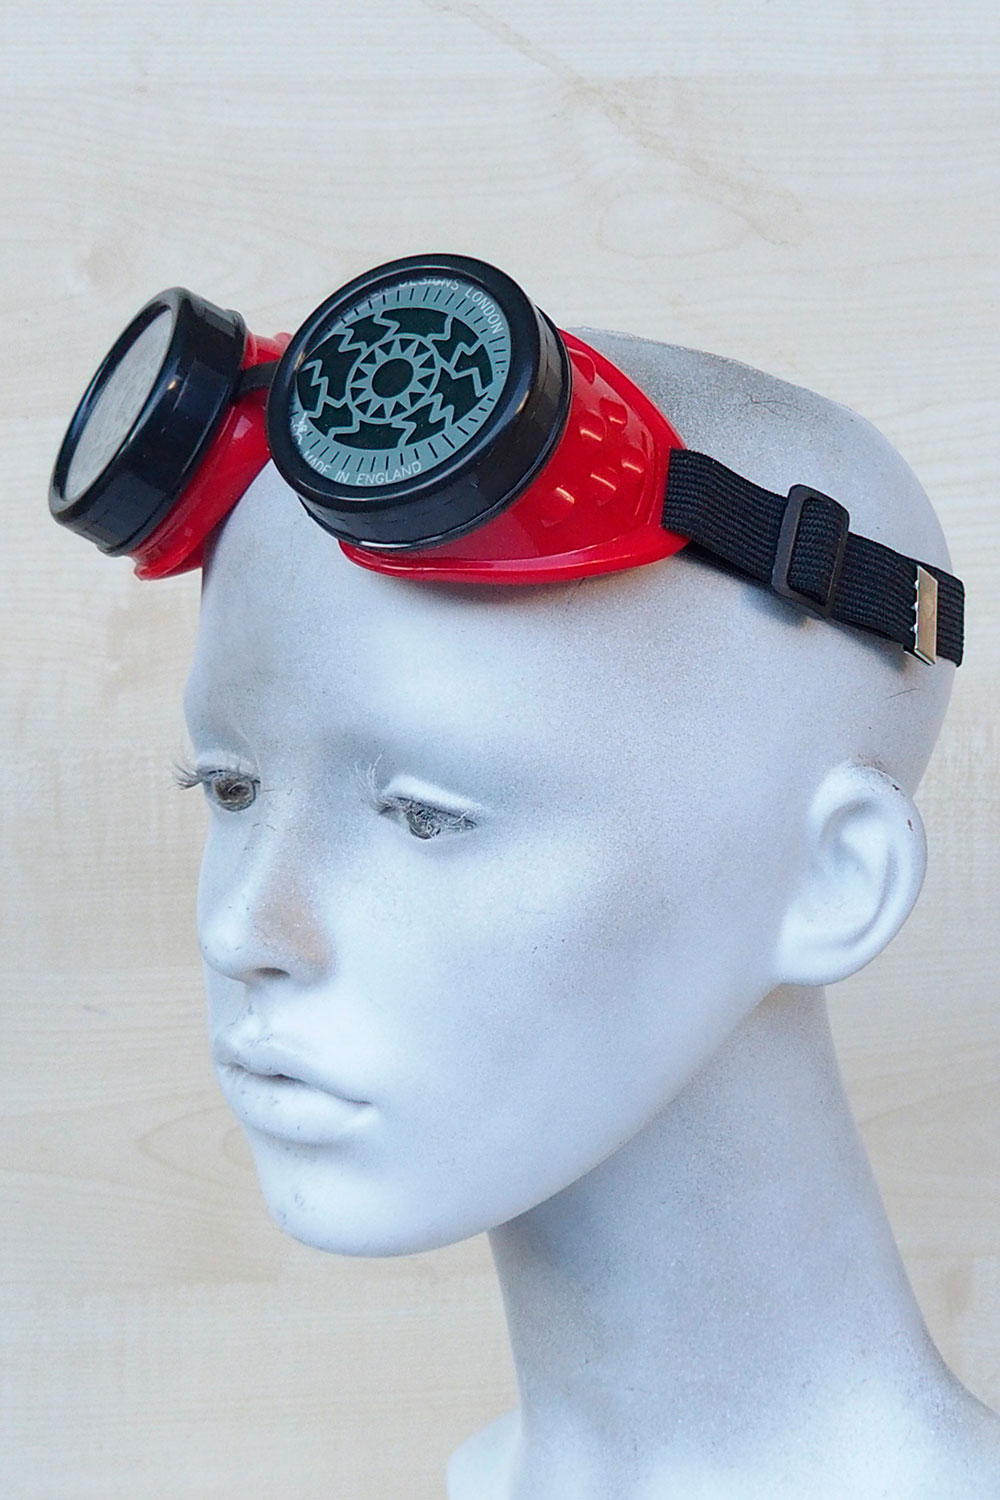 steampunk goggles stainless steel lens red plastic cups EYE